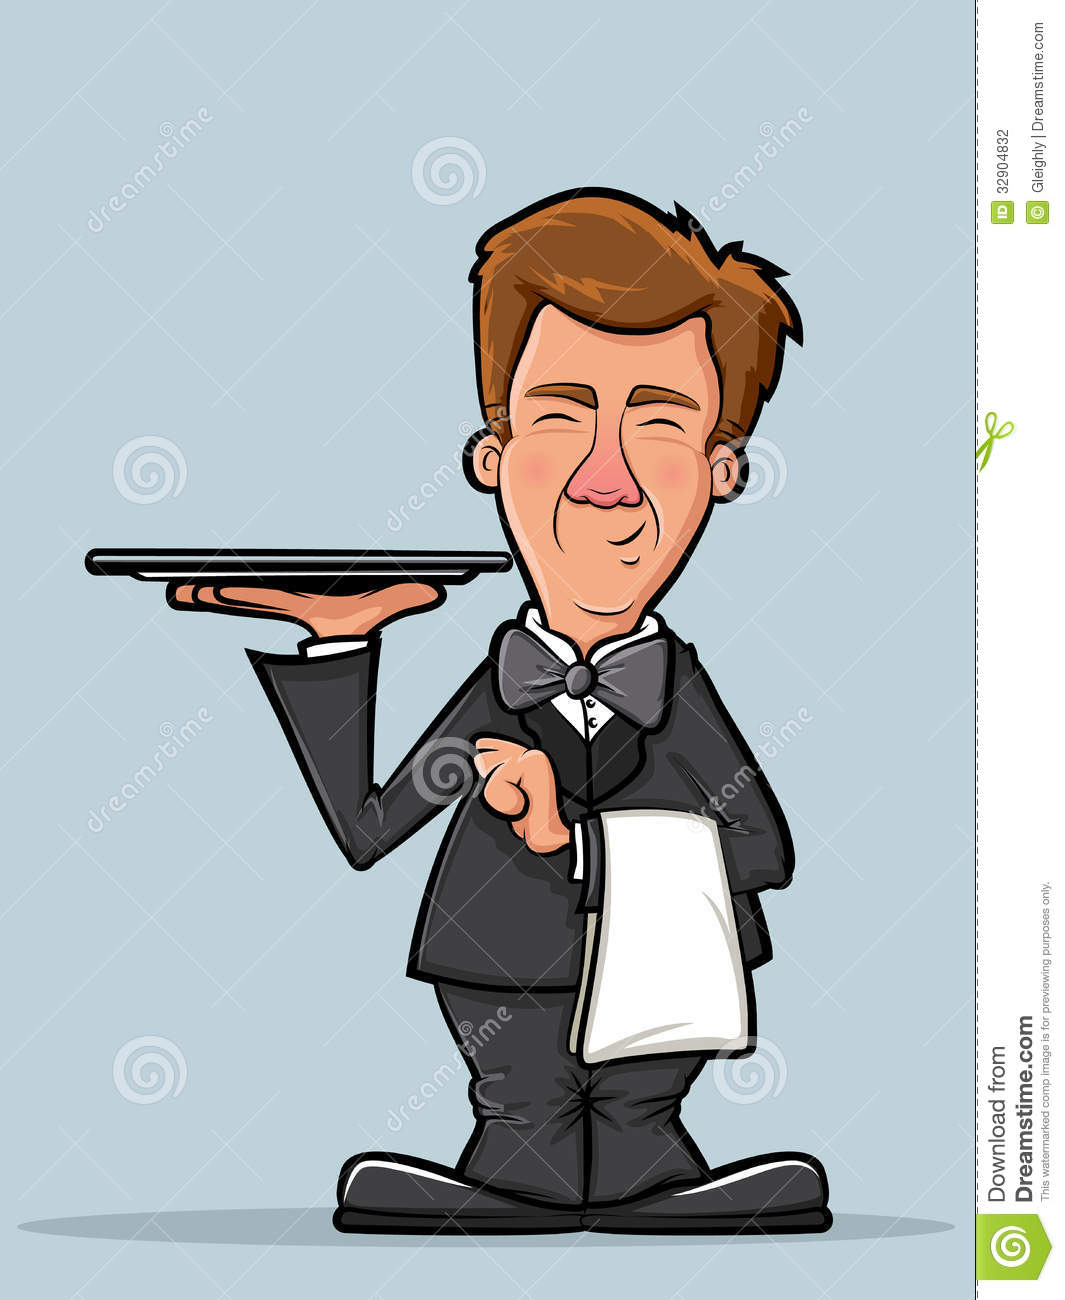 Waiter Or Butler Cartoon Stock Photography - Image: 32904832 Empty Food Tray Clipart